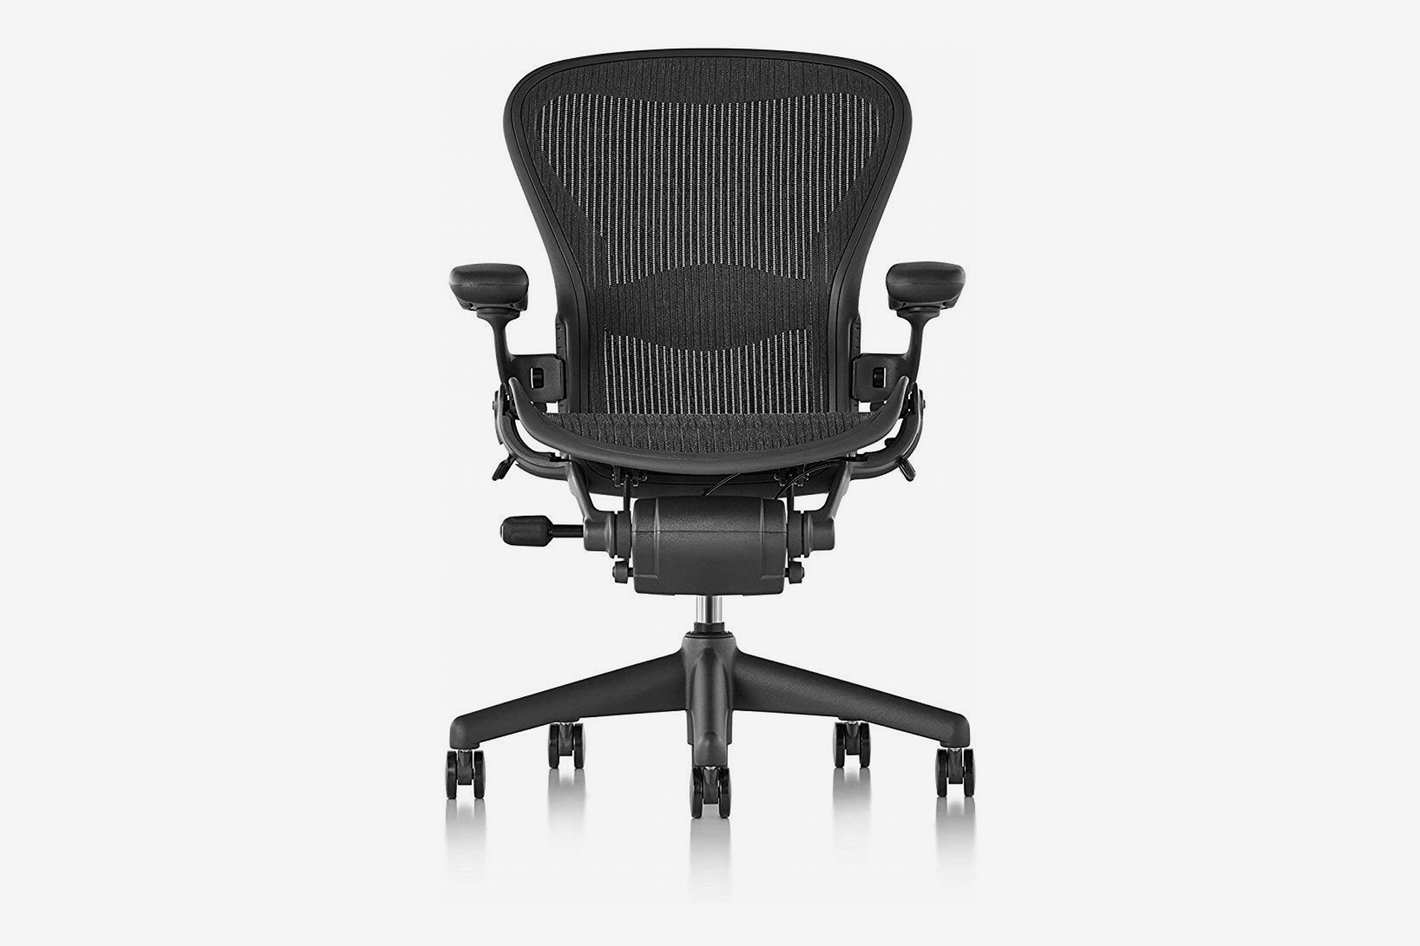 Herman Miller Classic Aeron Chair (Renewed)